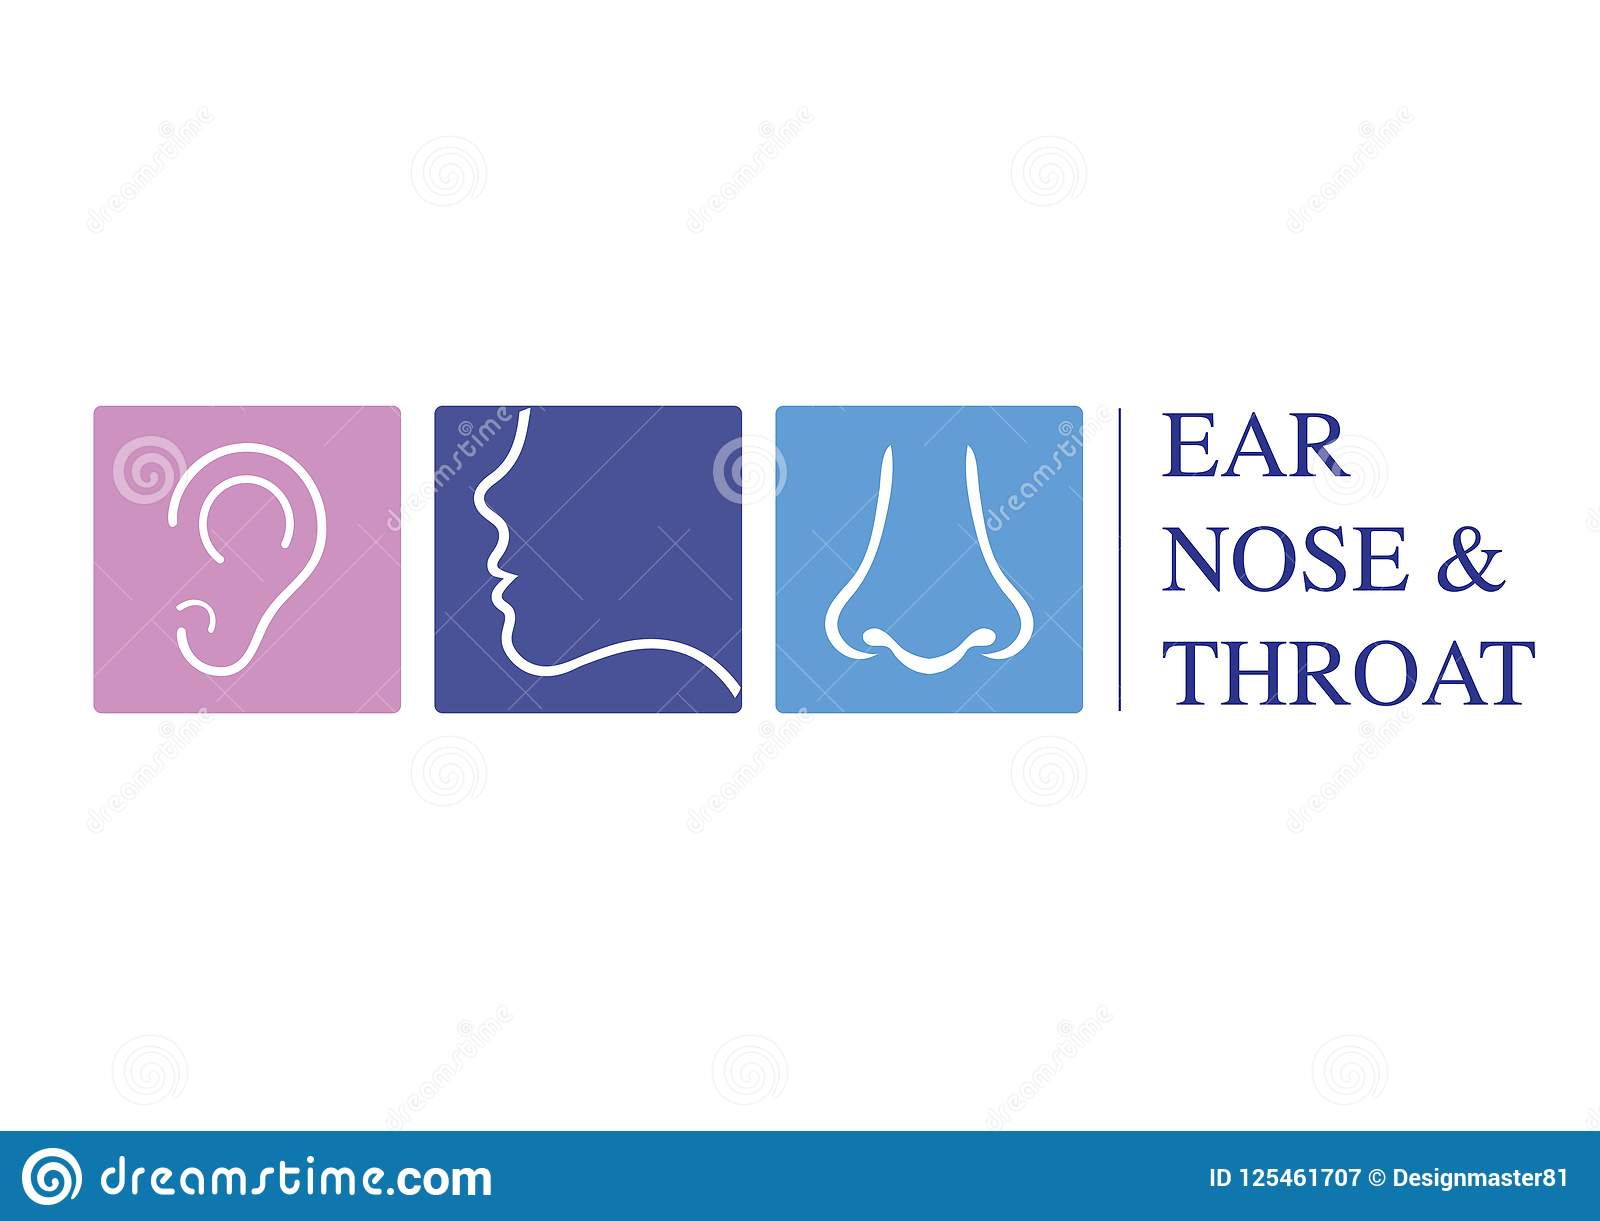 ear nose and throat diagram honda odyssey sliding door parts ent logo template head for doctor specialists with concept line vector icon editable stroke flat linear illustration isolated on